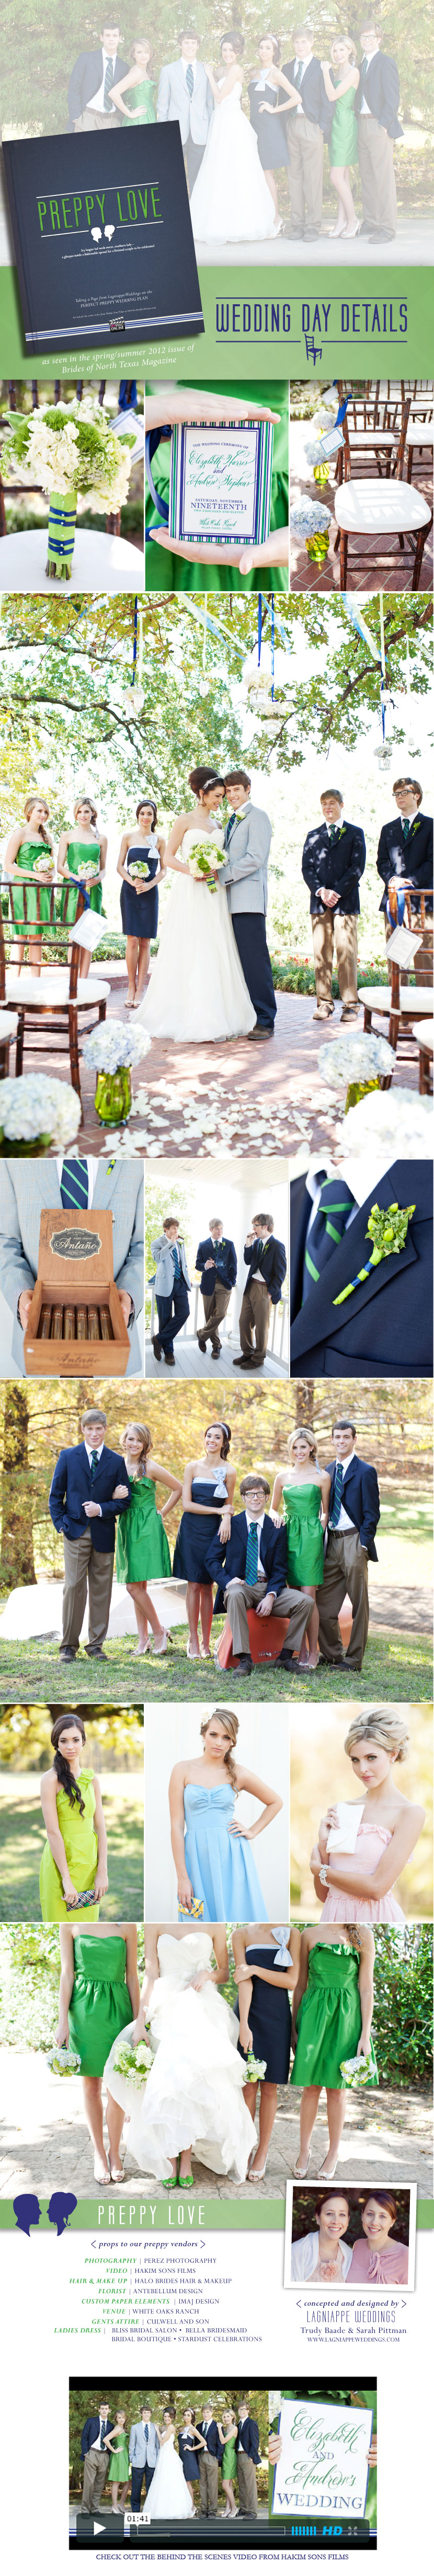 Brides of North Texas preppy love wedding fashion editorial